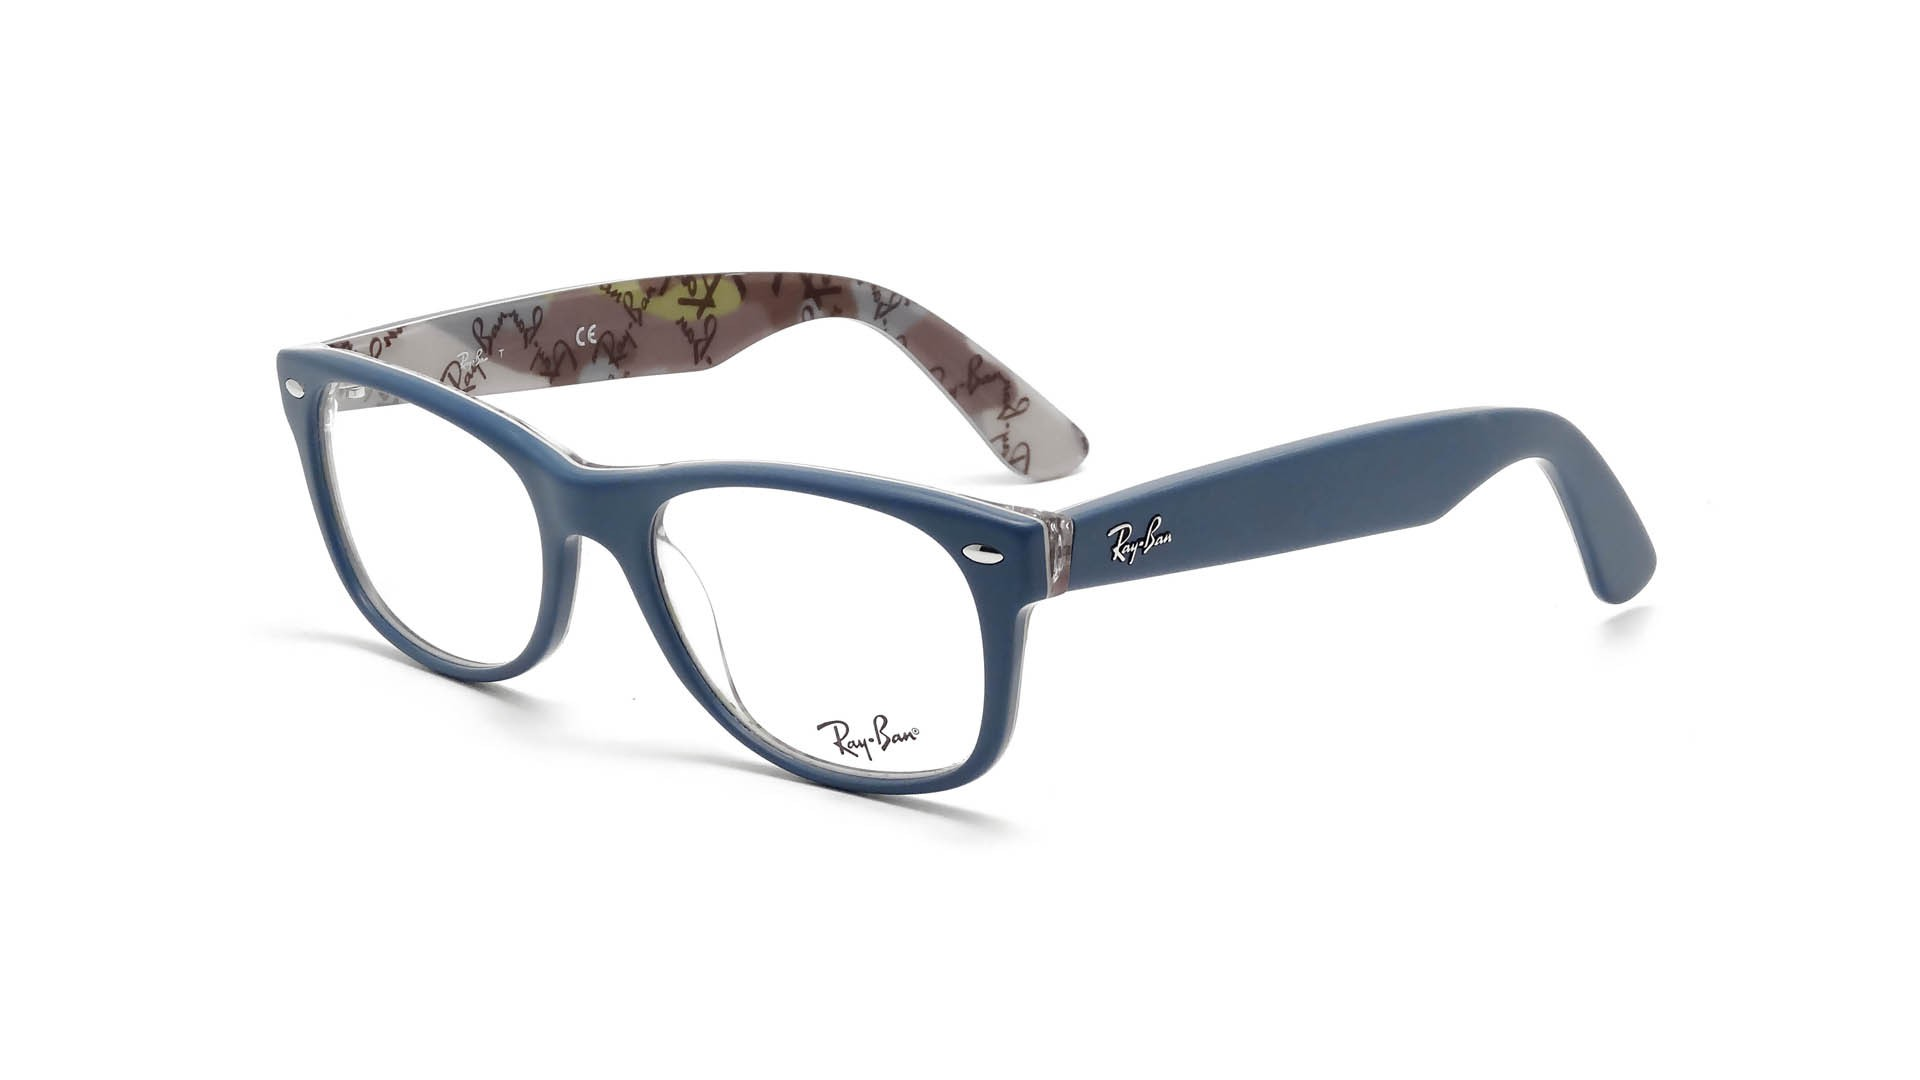 6b857ad4b9 Rayban 5184 On A Person